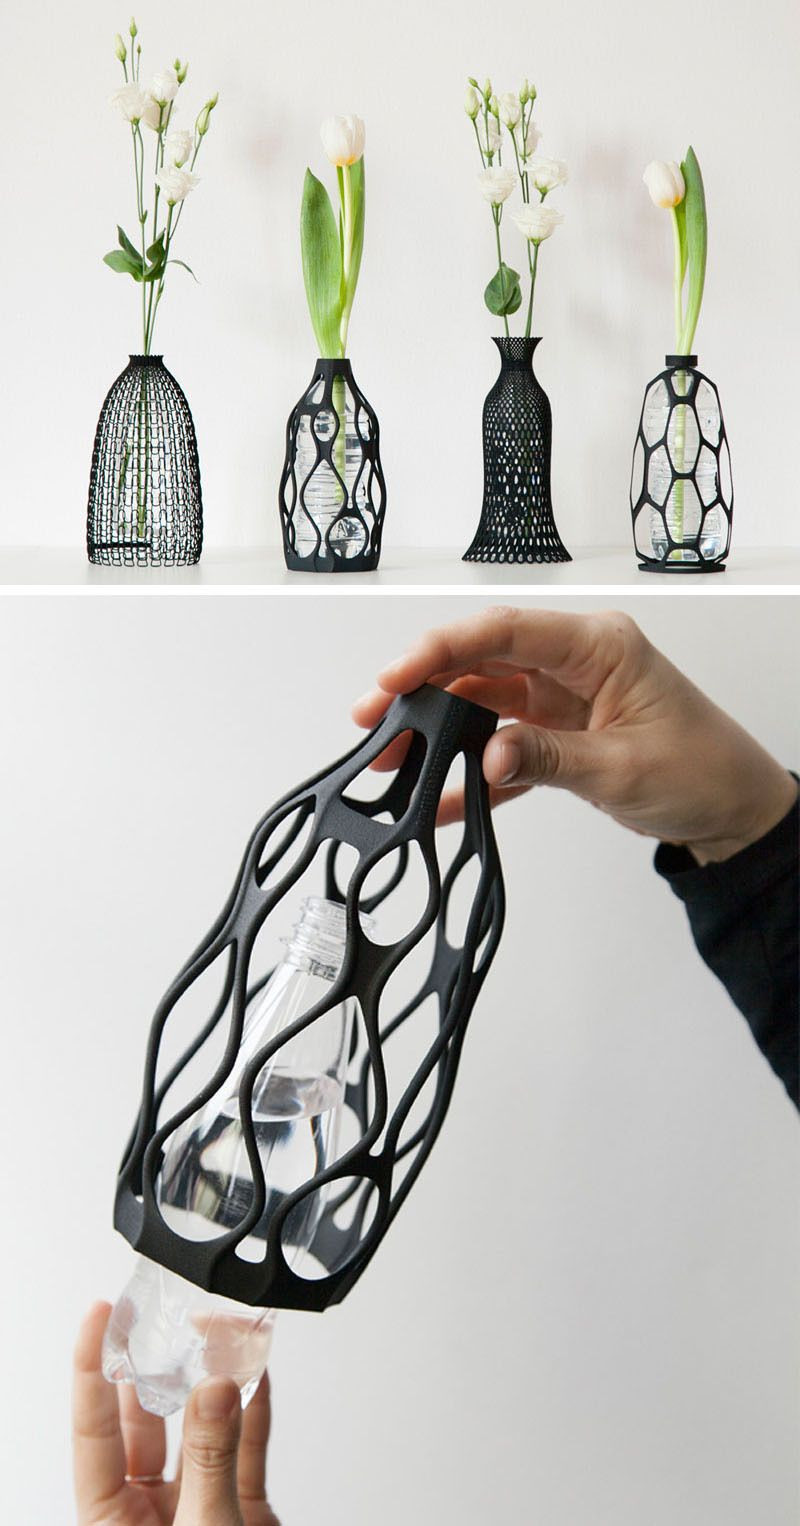 3d printed vase for sale of 5 things that are hot on pinterest this week • f u r n i t u r e inside 5 things that are hot on pinterest this week